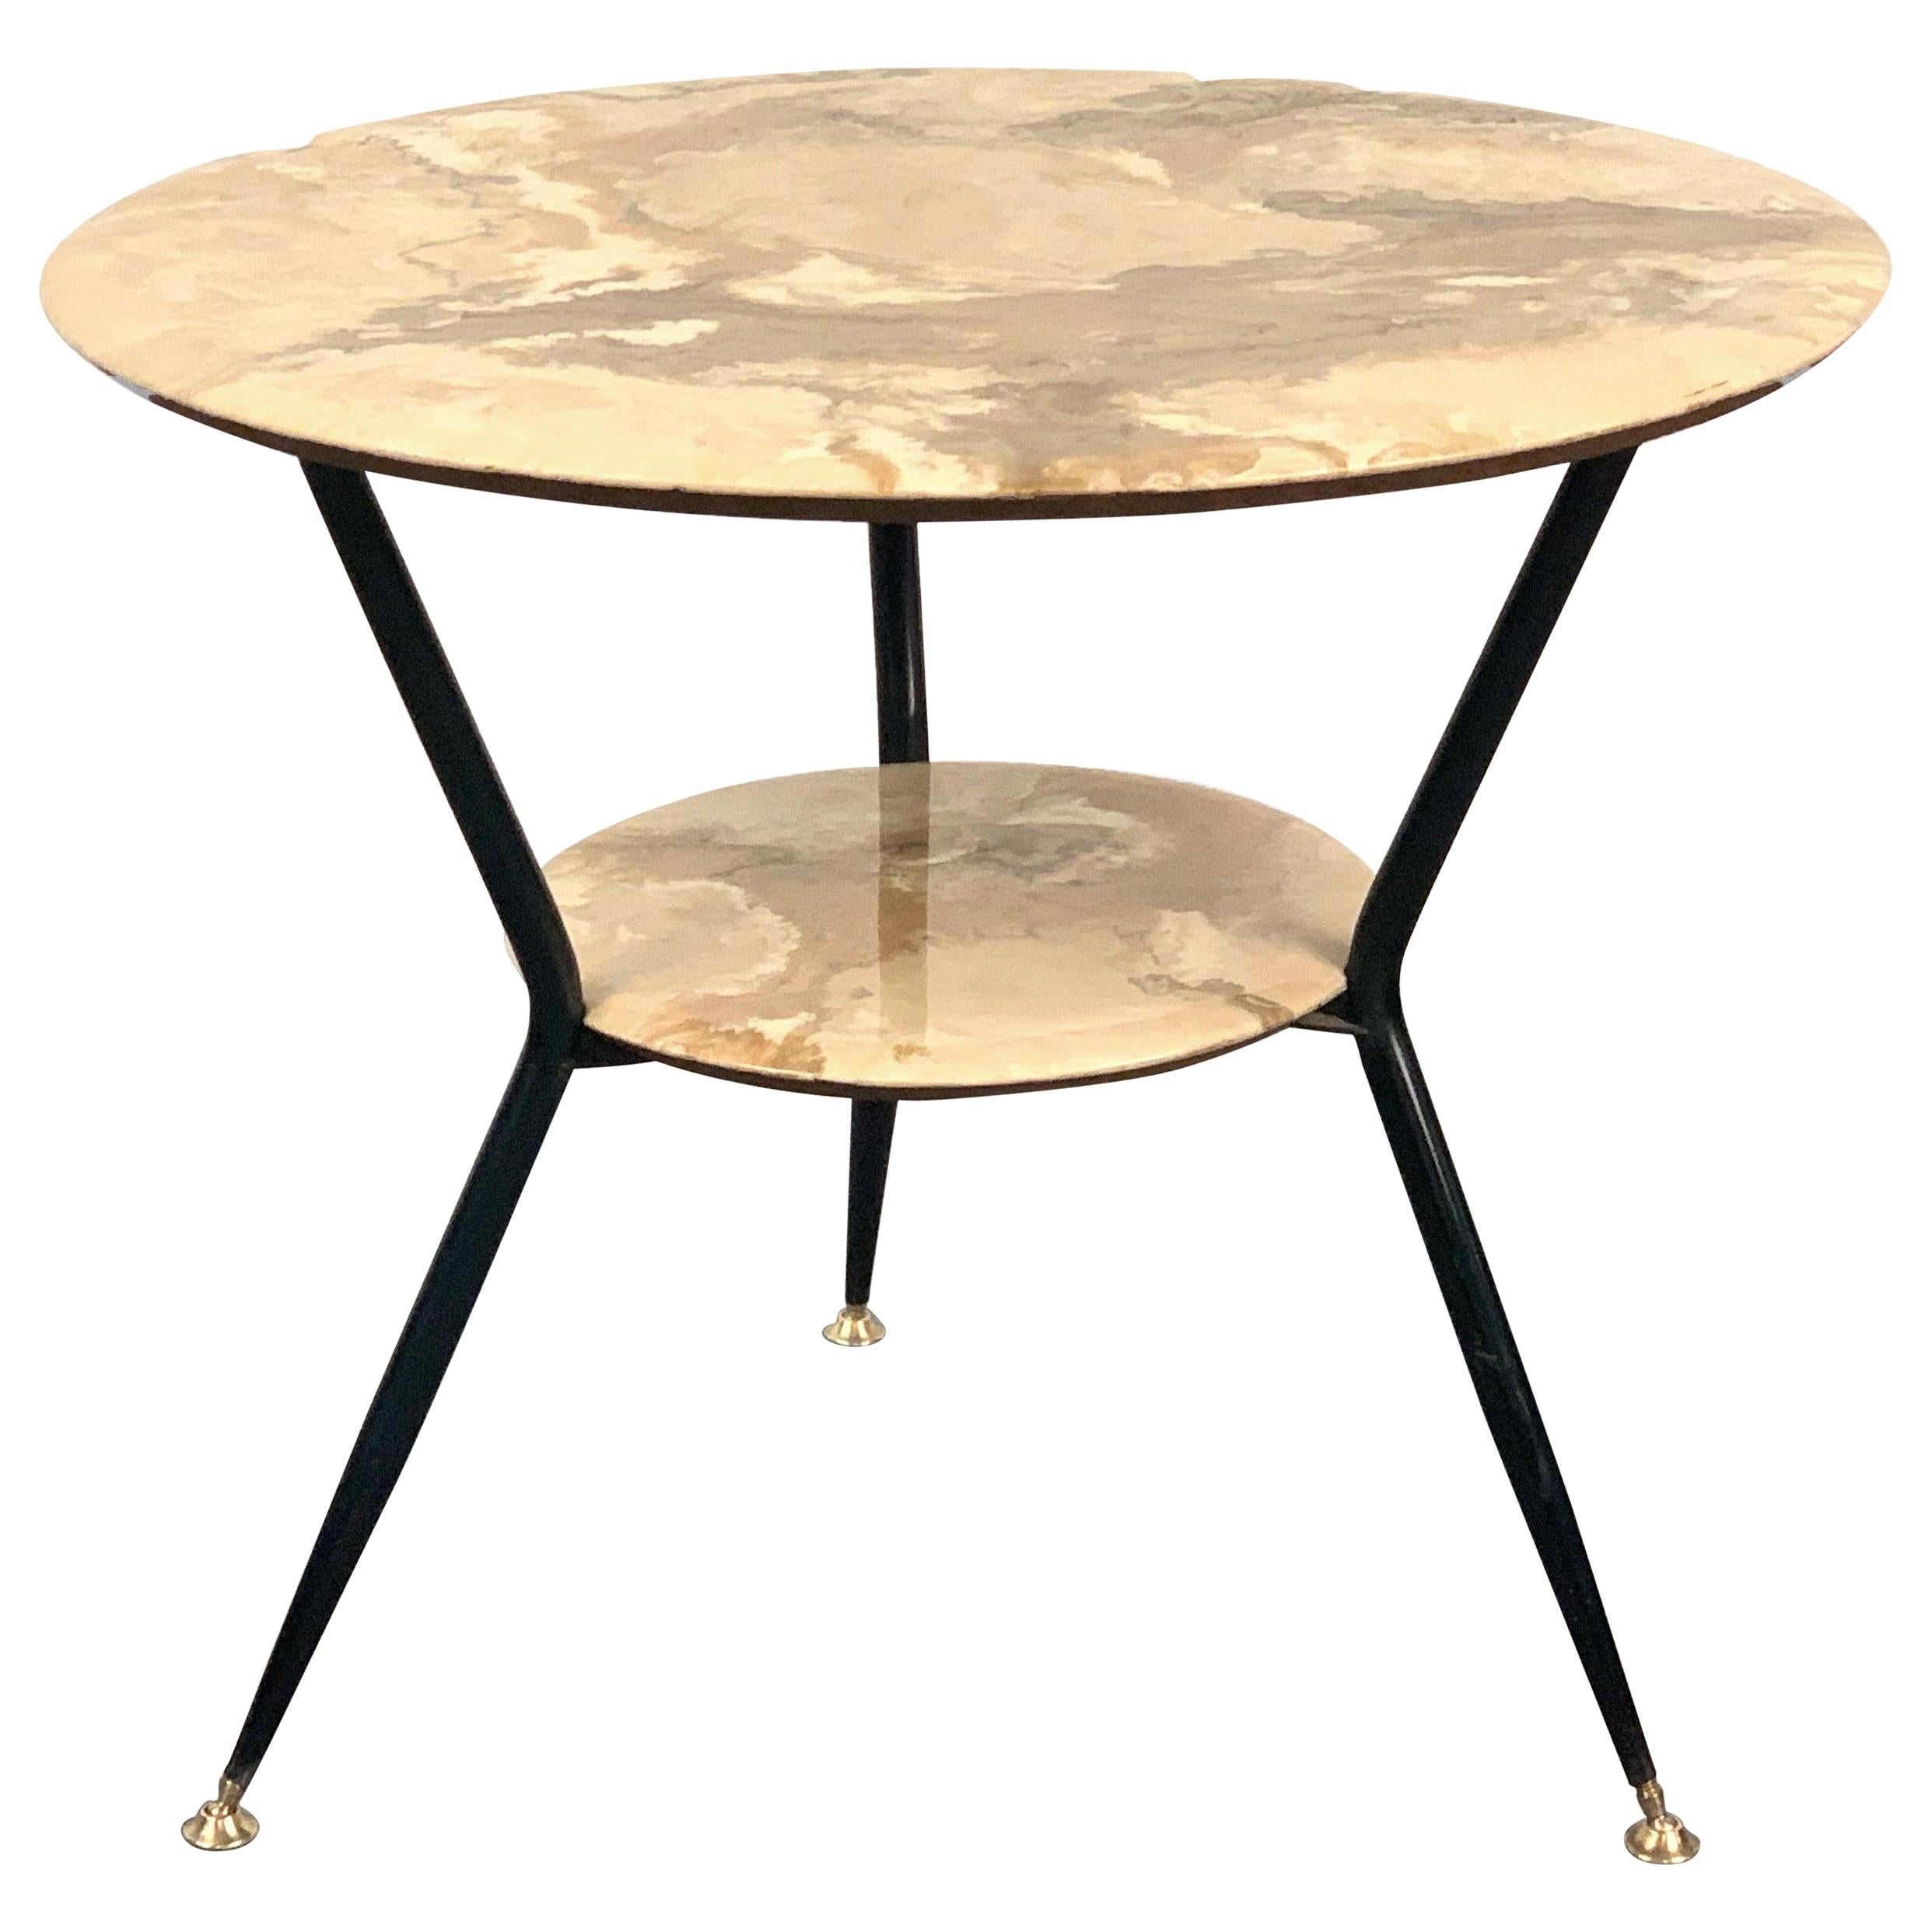 Round Marble and Wood Coffee Double Level Italian Table with Brass Feet, 1950s